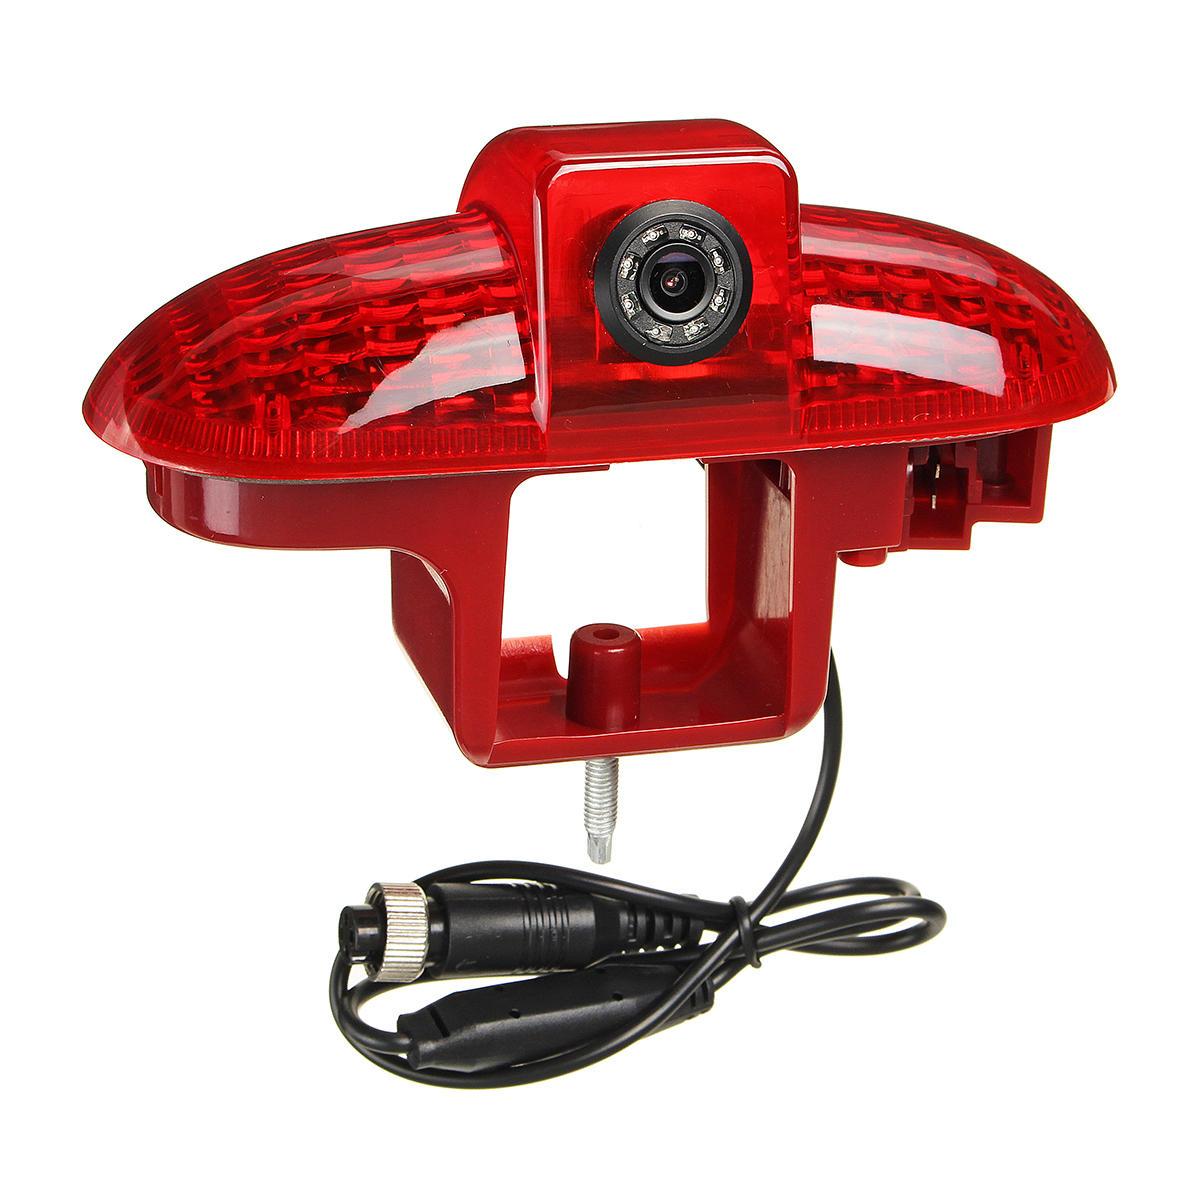 Car LED High Mount Stop Lamp 3RD Brake Light with Rear View Camera for Renault Trafic 2001-2014 European Type